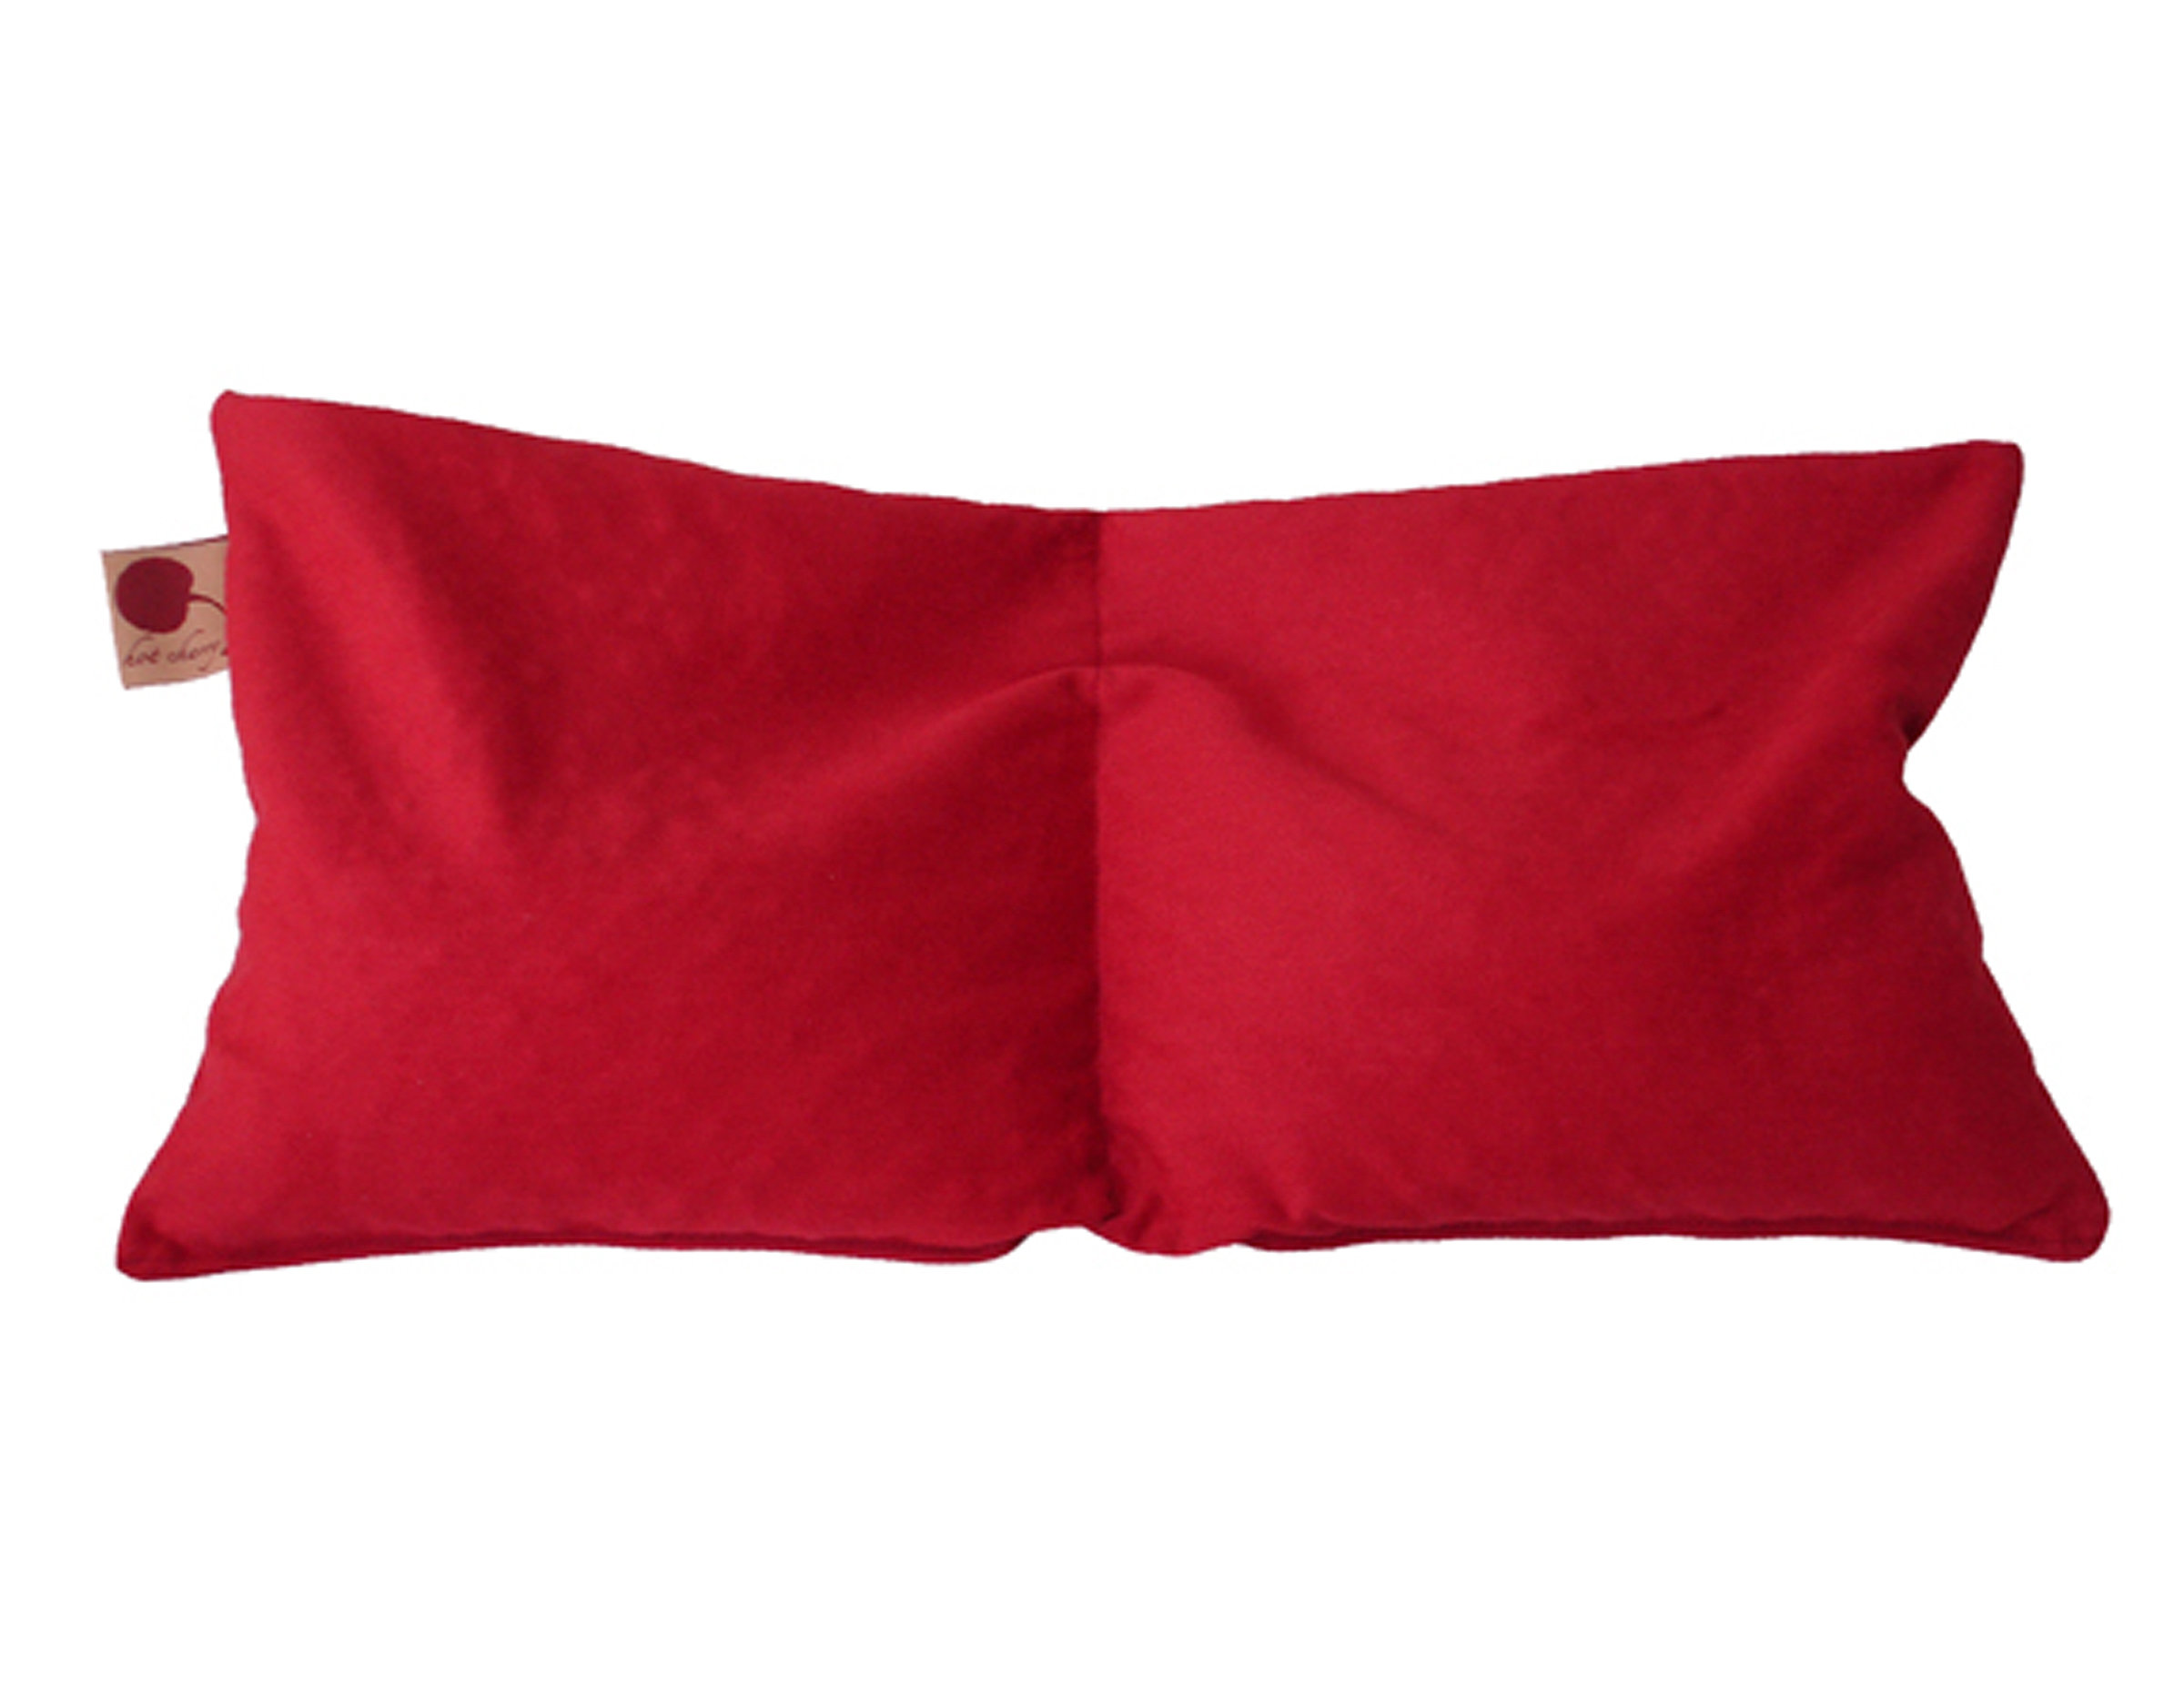 hot cherry therapeutic pillows